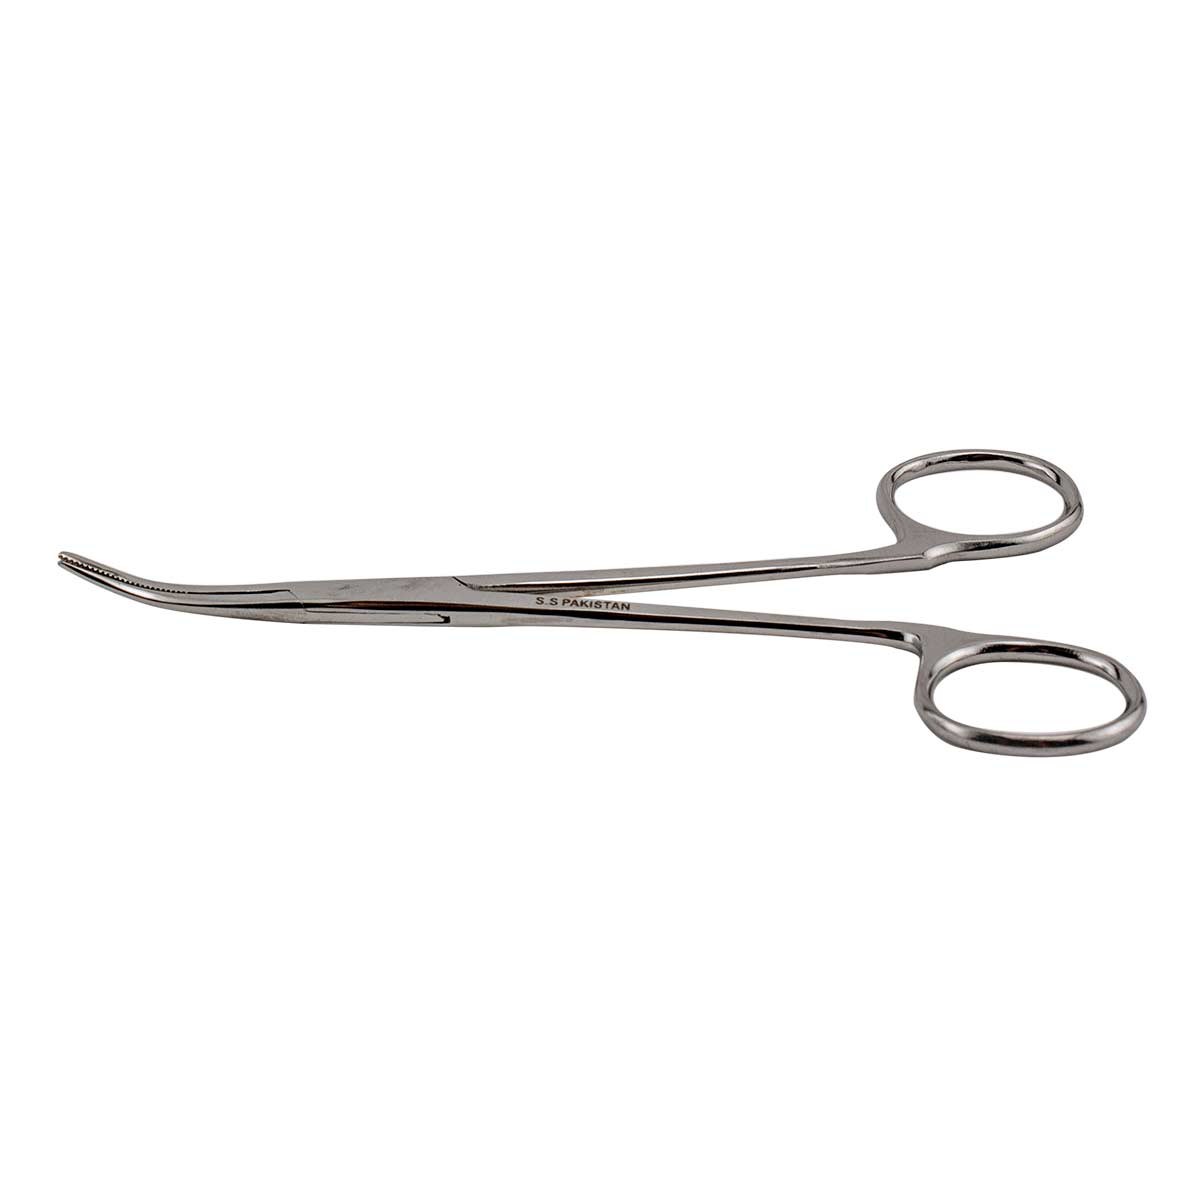 Paw Brothers 5.5 inch Curved Non-Locking Hemostat